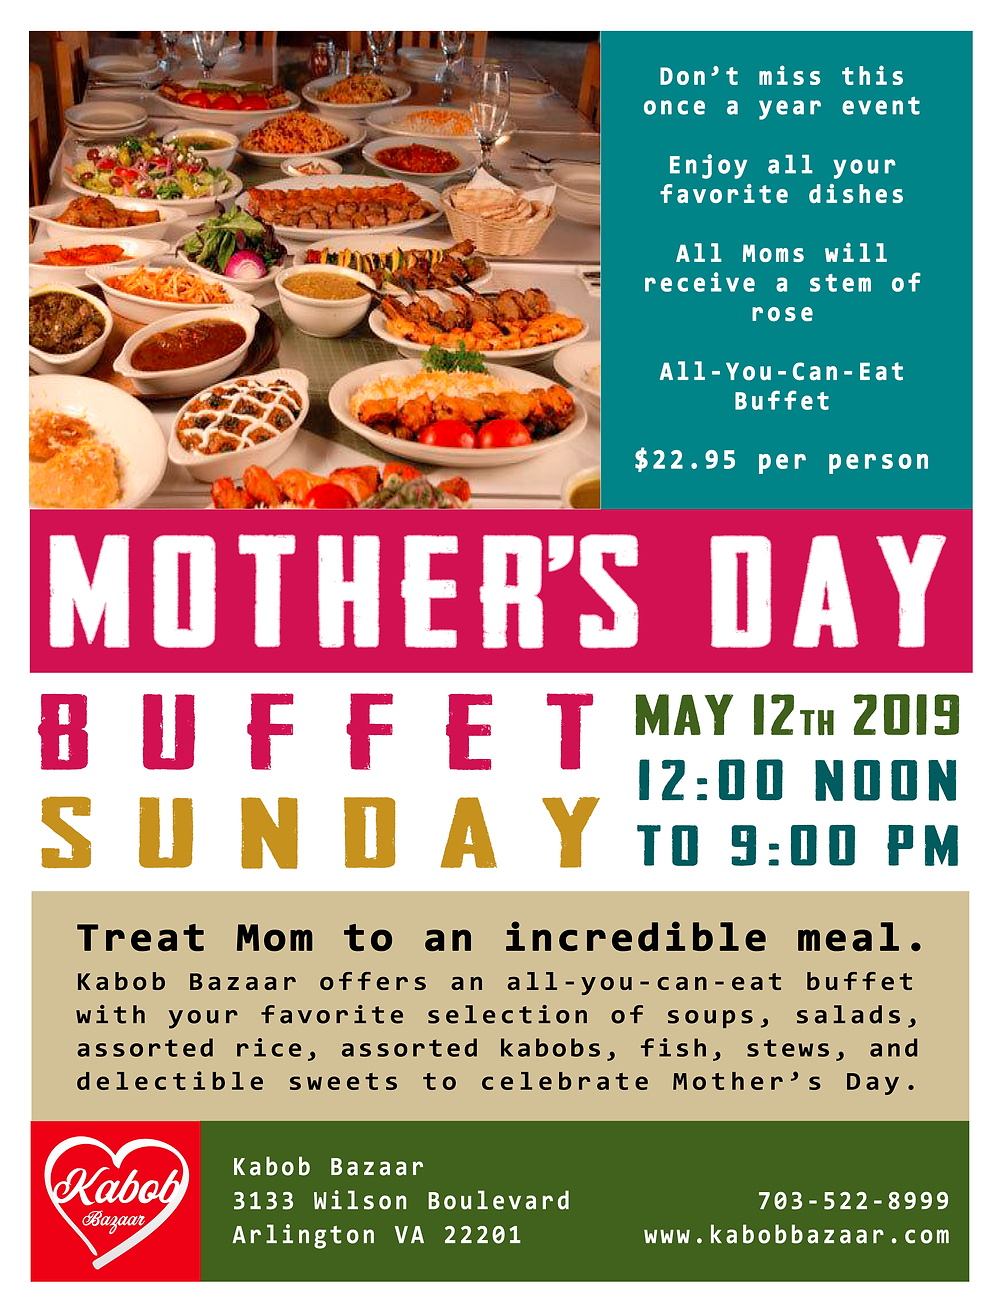 Celebrate Mother's Day at Kabob Bazaar